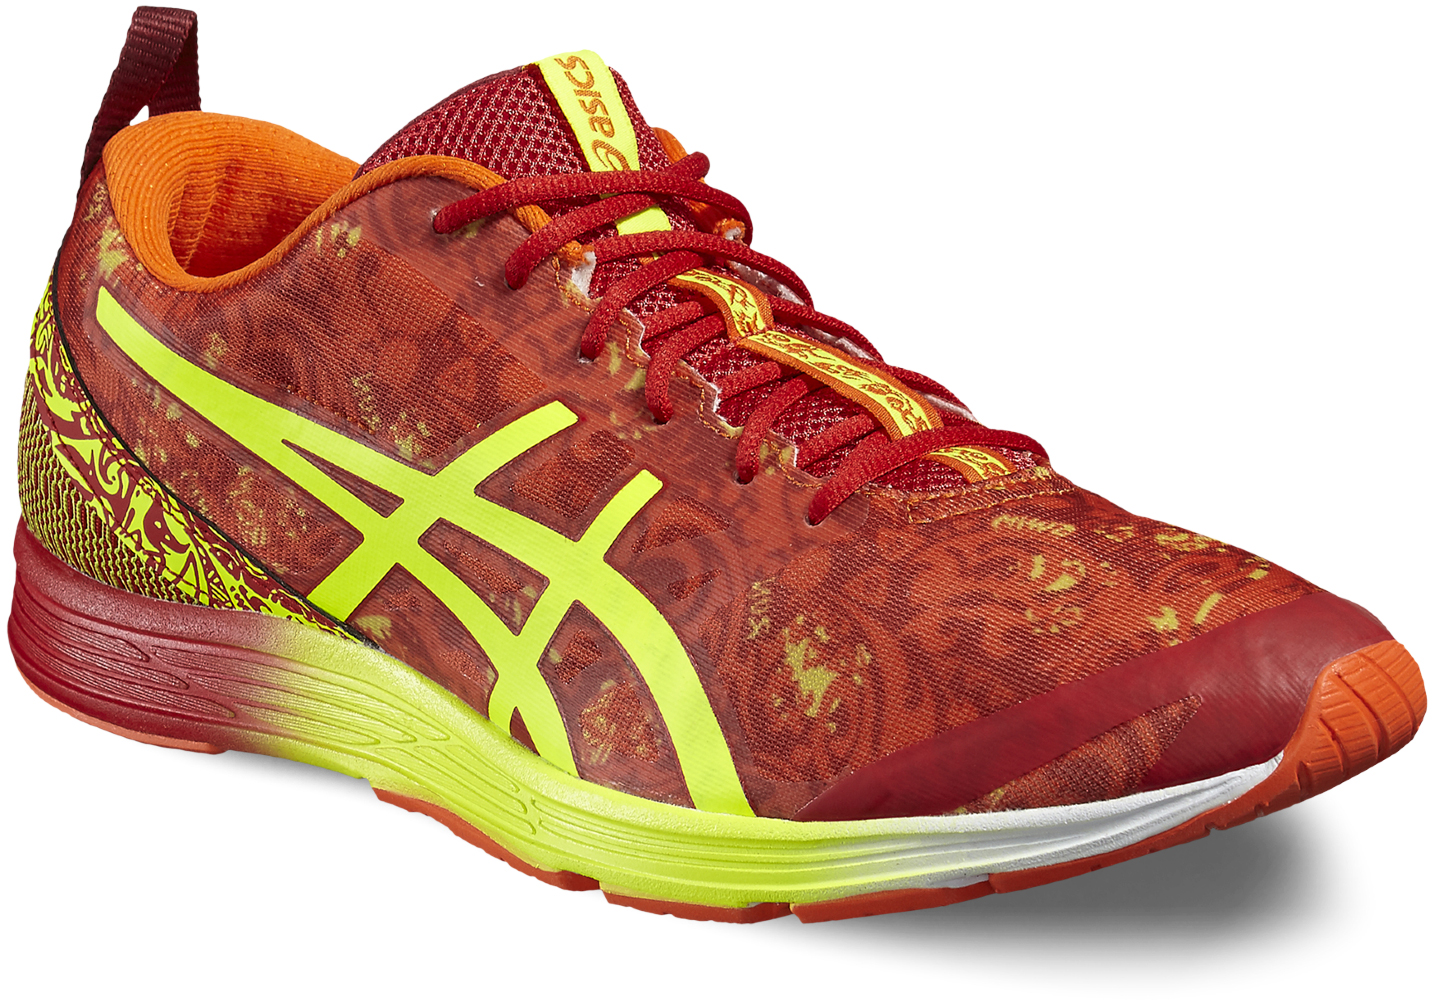 meilleur service c87a9 42d37 Buy asics triathlon running shoes cheap